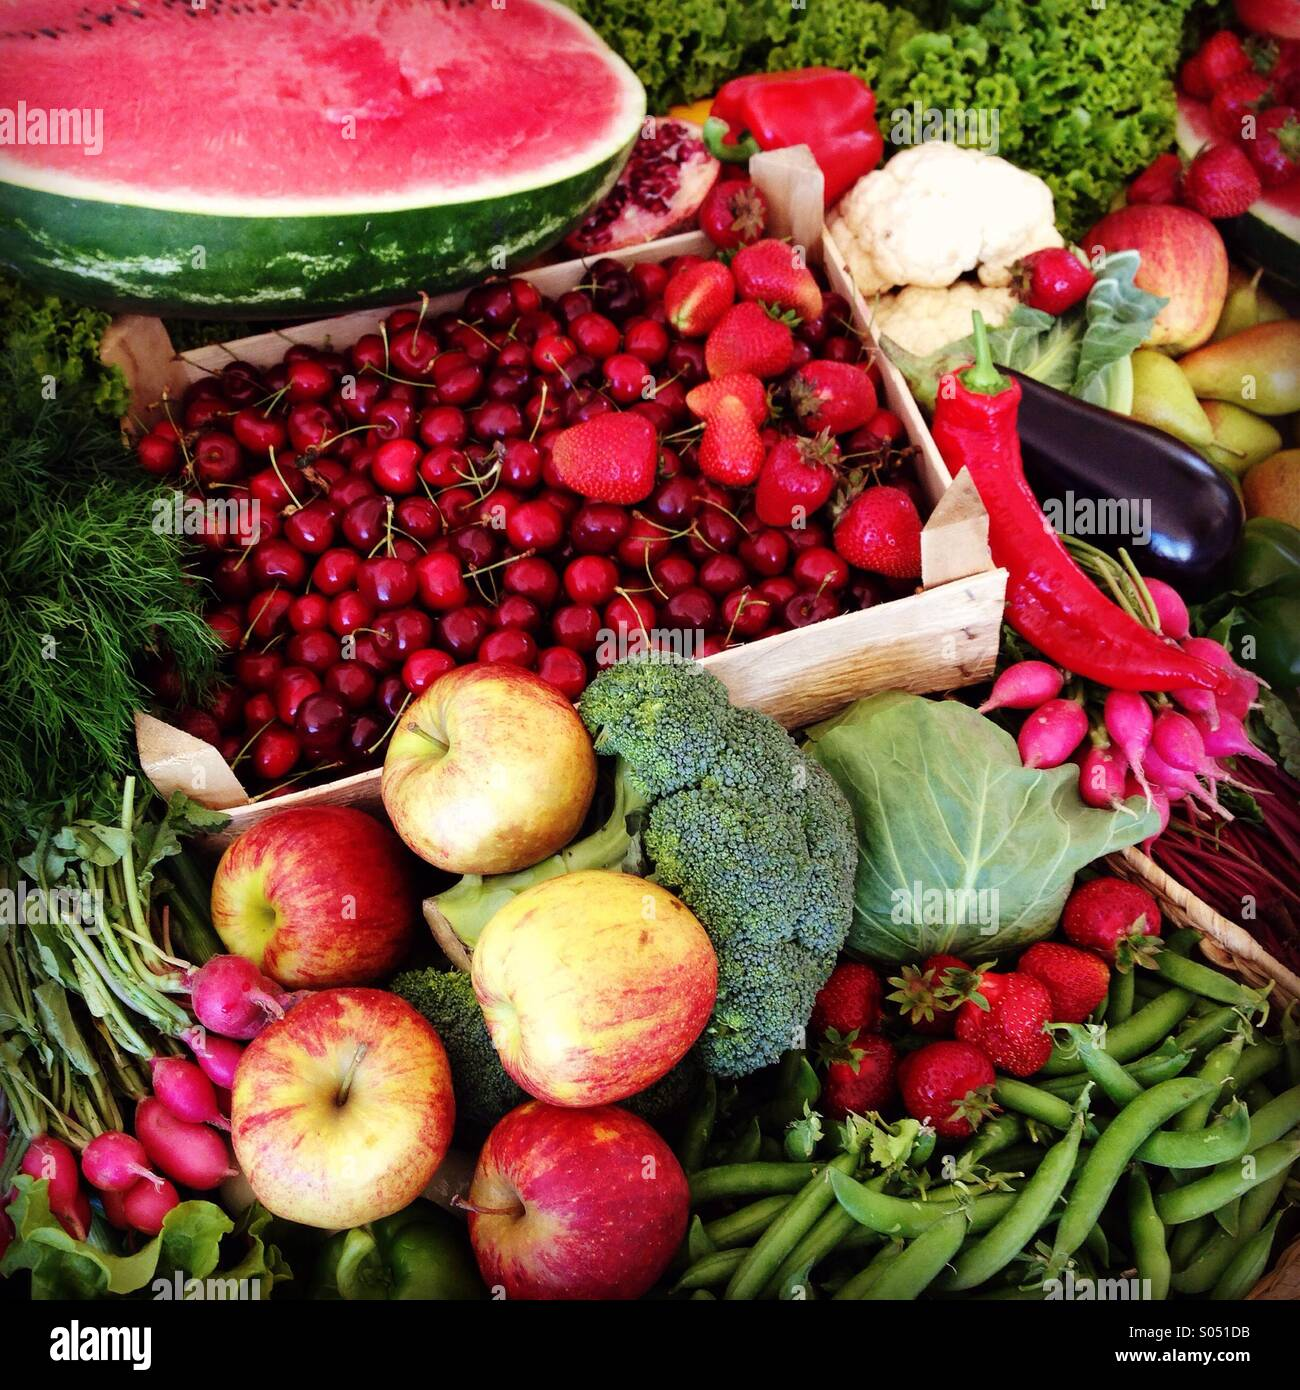 raw vegies stock photos raw vegies stock images alamy